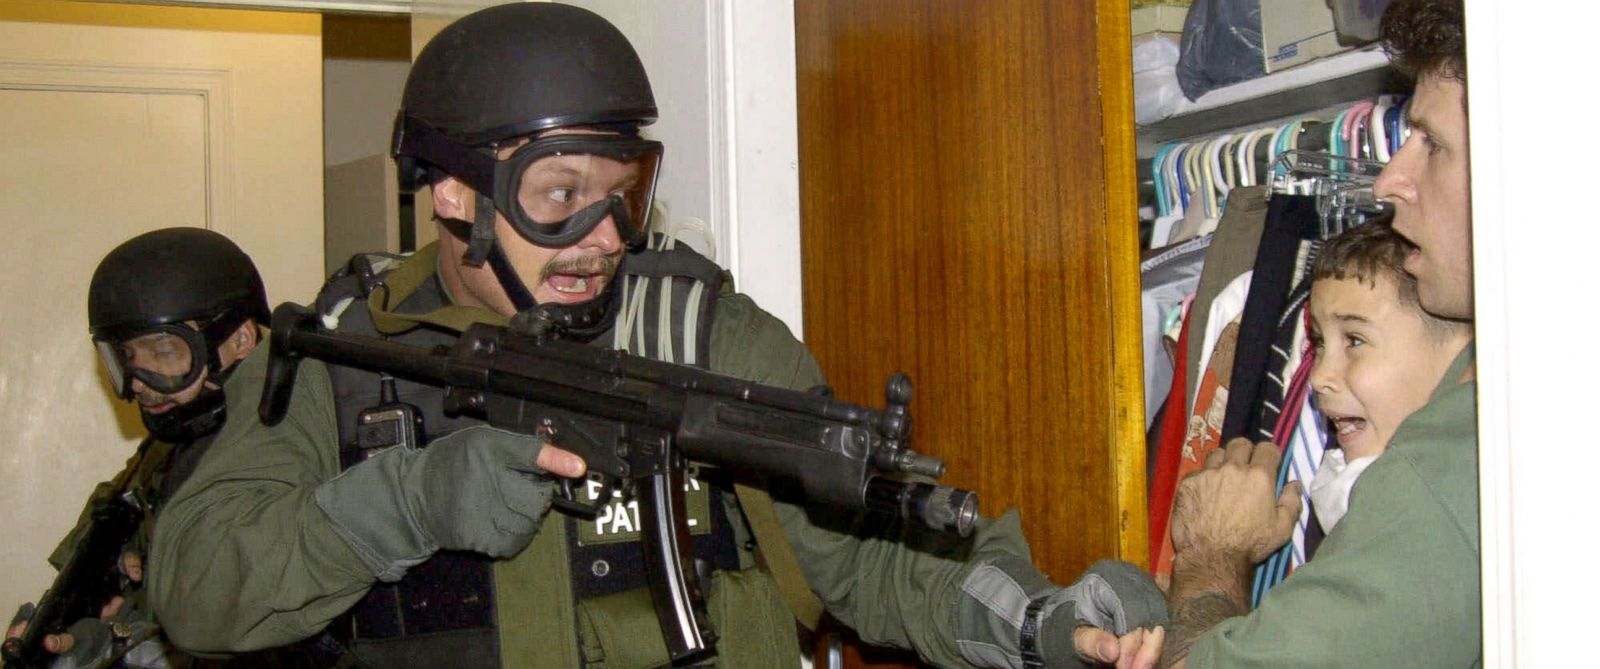 the true story of elian gonzalez A brief history of the elian gonzalez affair – slideshow by time magazine (in spanish) official cuban website: about the custody battle for elián the year in pictures: elian gonzalez time 2000 archived from the original on july 9, 2007 garcía márquez, gabriel (2000-03-29) elián: shipwrecked on dry land.